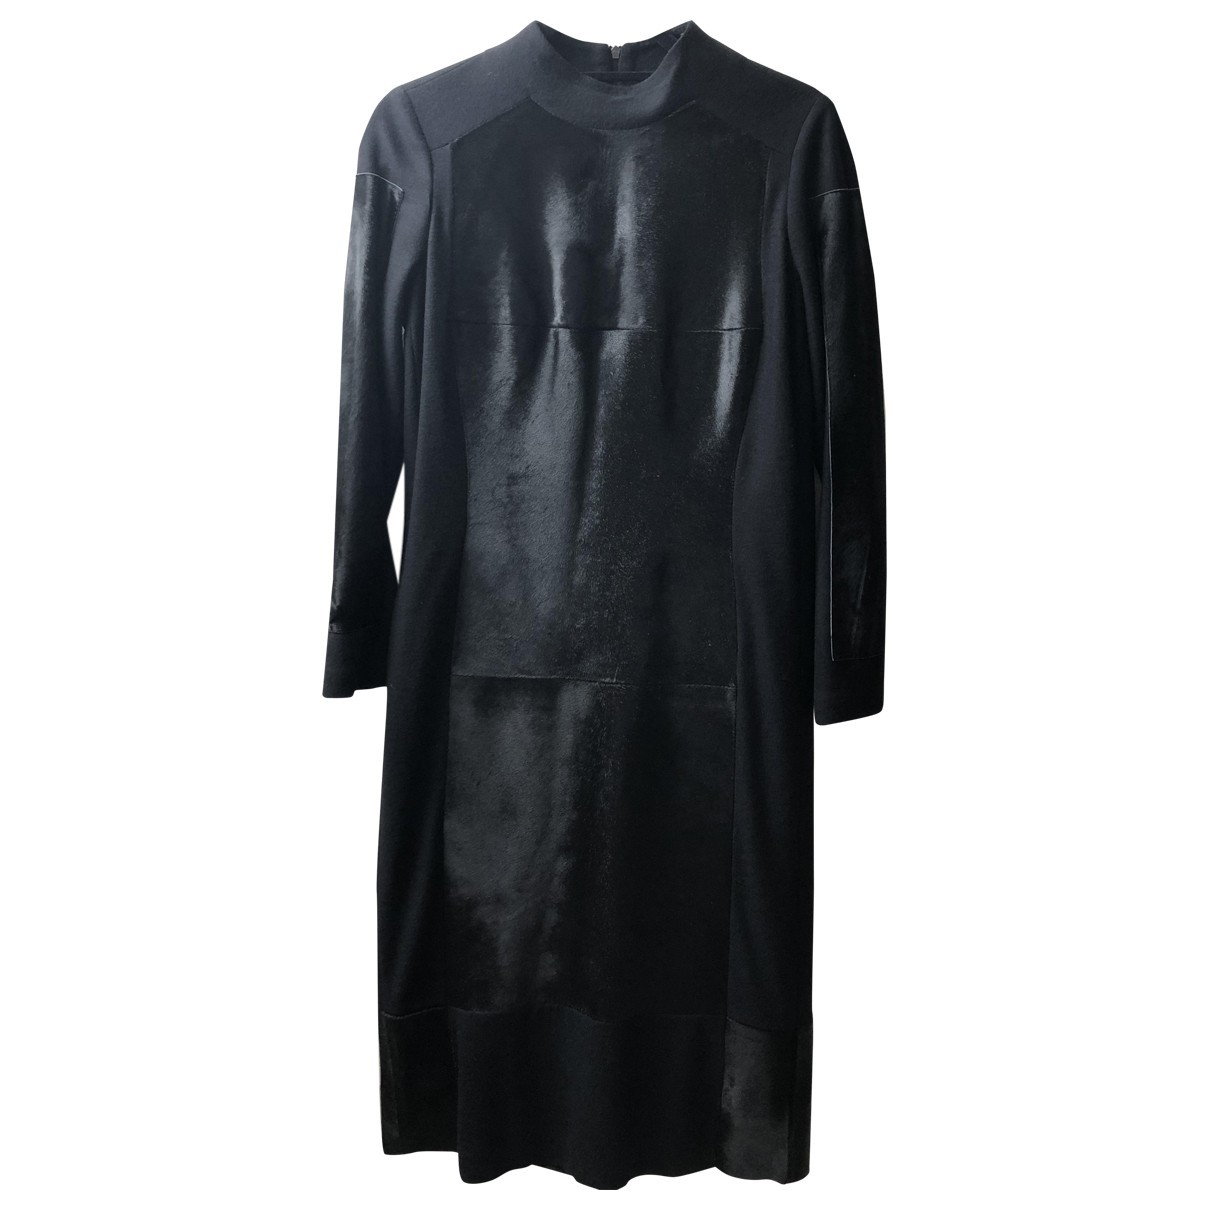 Nicole Farhi \N Black Leather dress for Women 8 UK